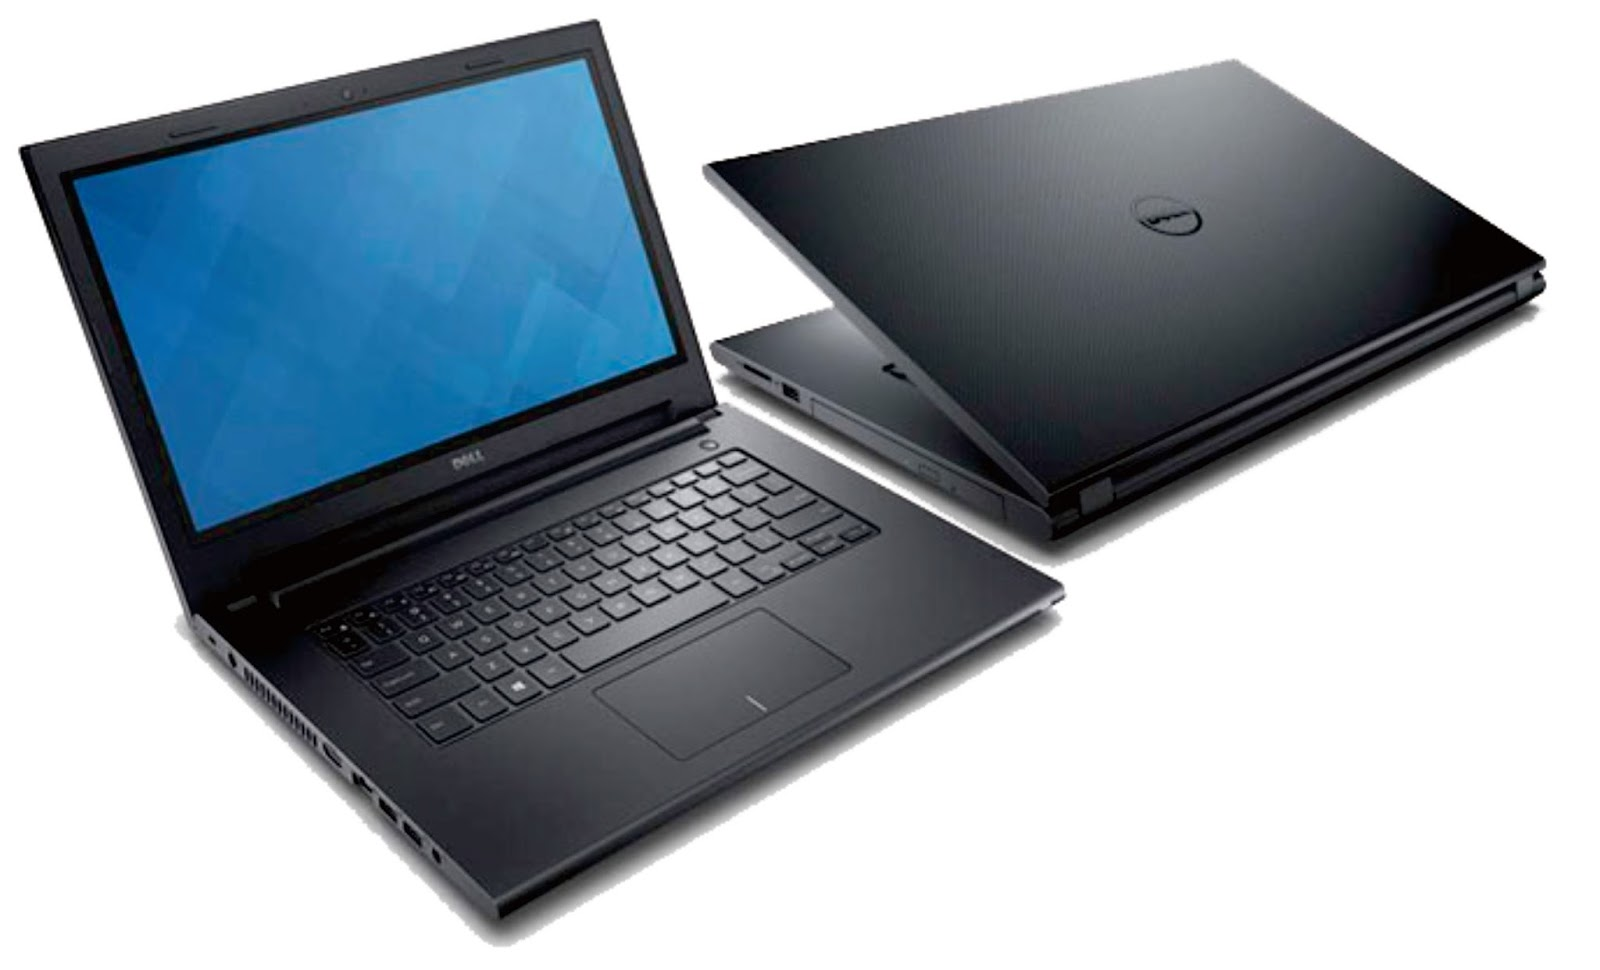 dell n5110 drivers for windows 10 64 bit